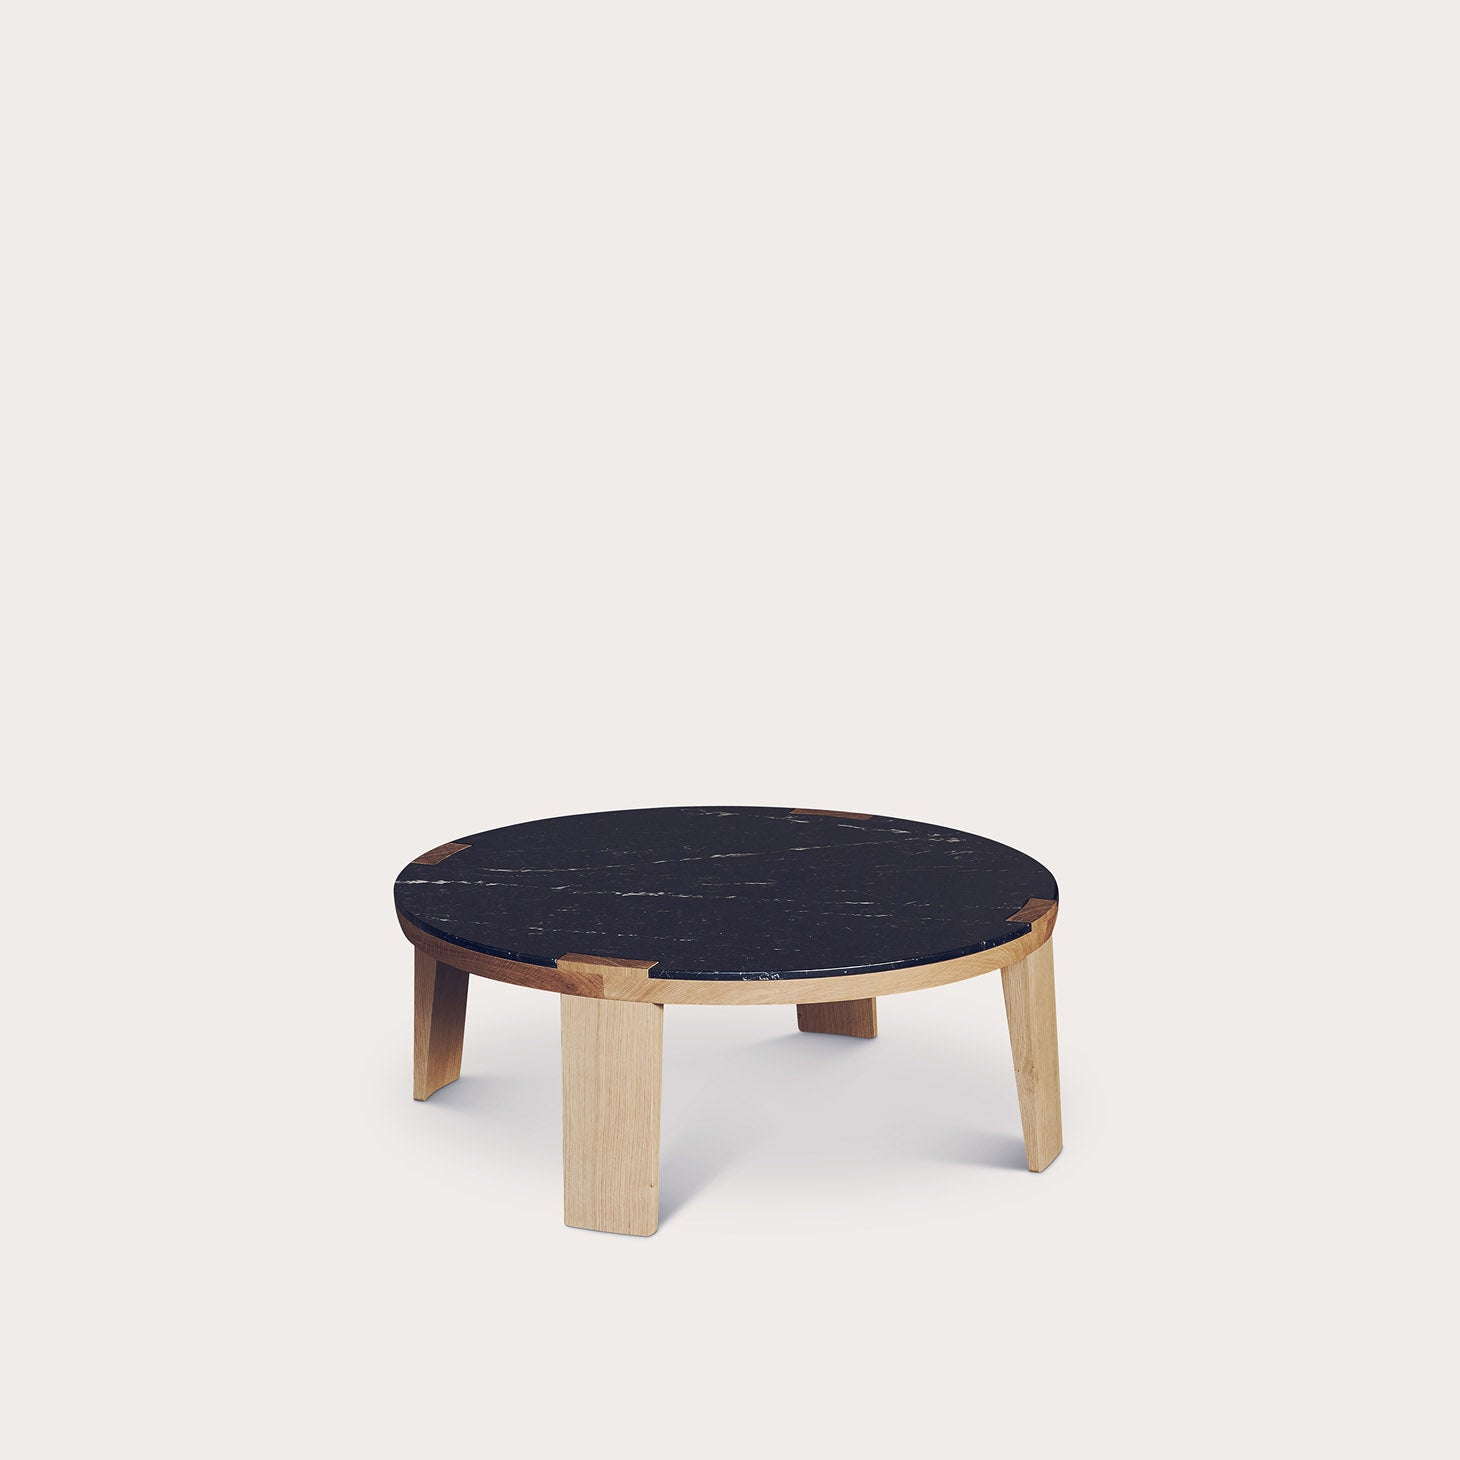 SUMO Tables Dan Yeffet Designer Furniture Sku: 765-230-10010